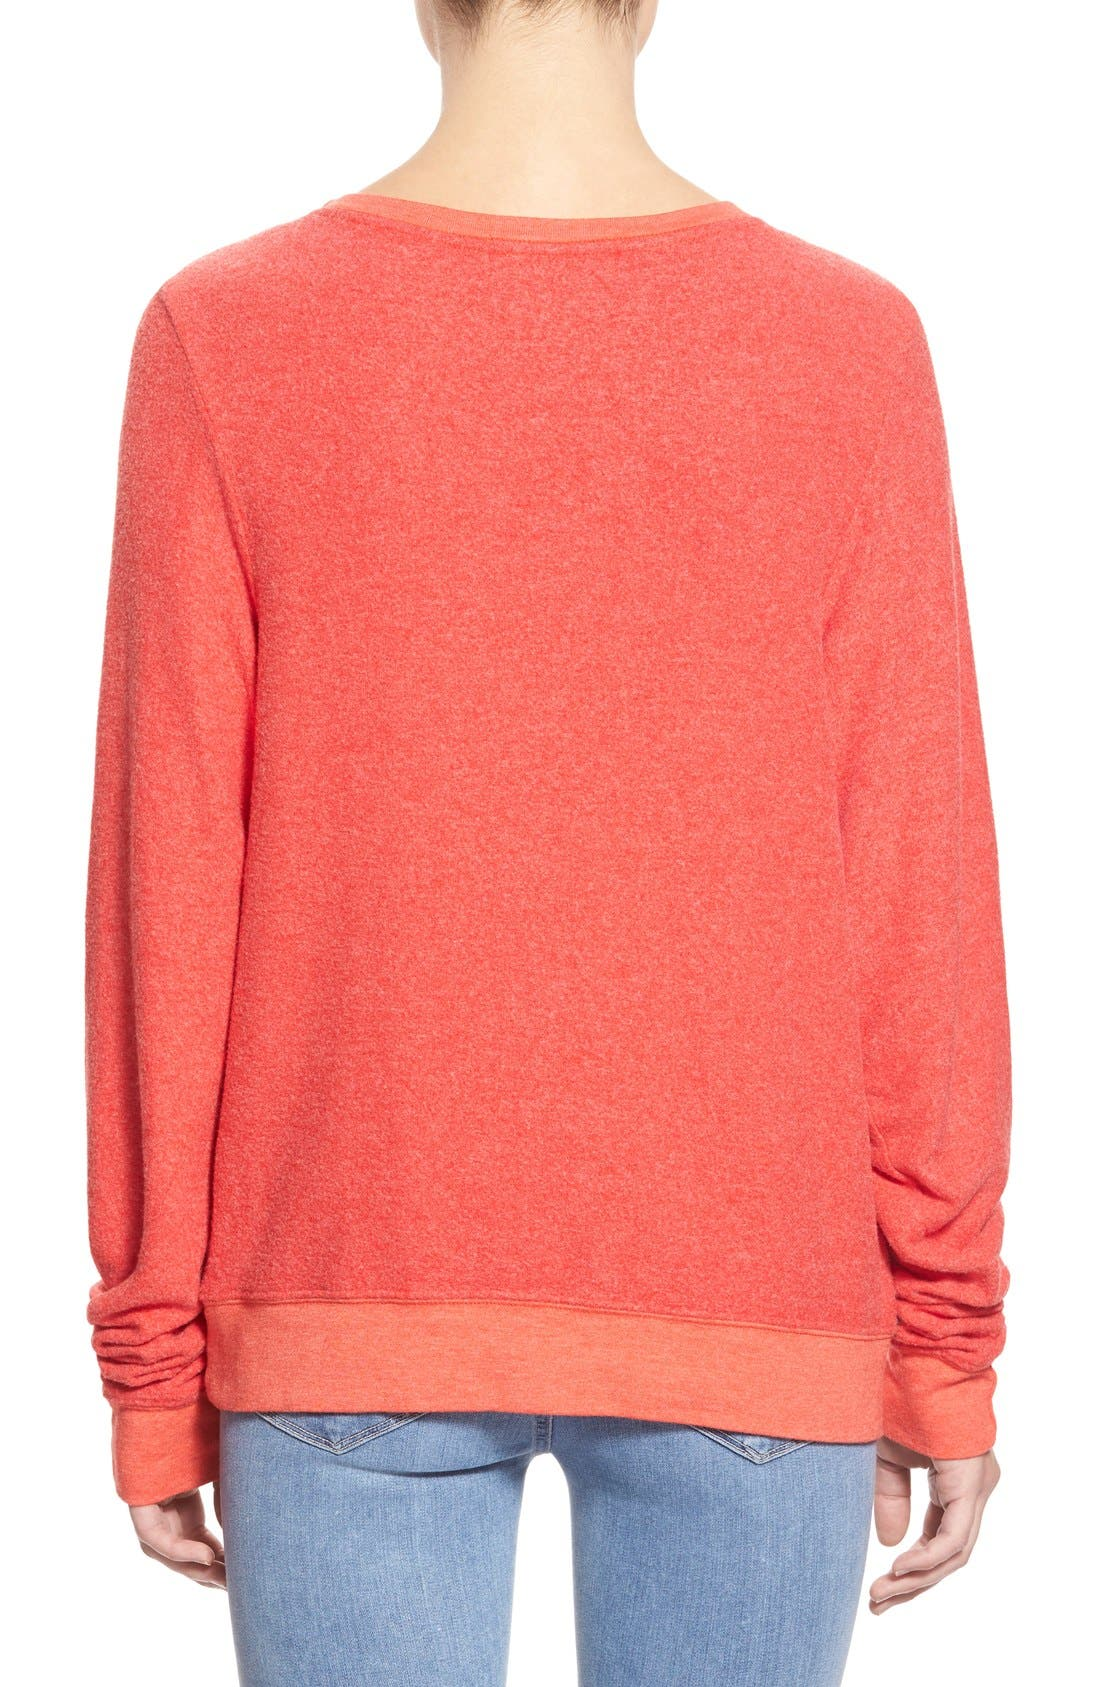 'Baggy Beach Jumper - Holiday List' Pullover,                             Alternate thumbnail 6, color,                             600